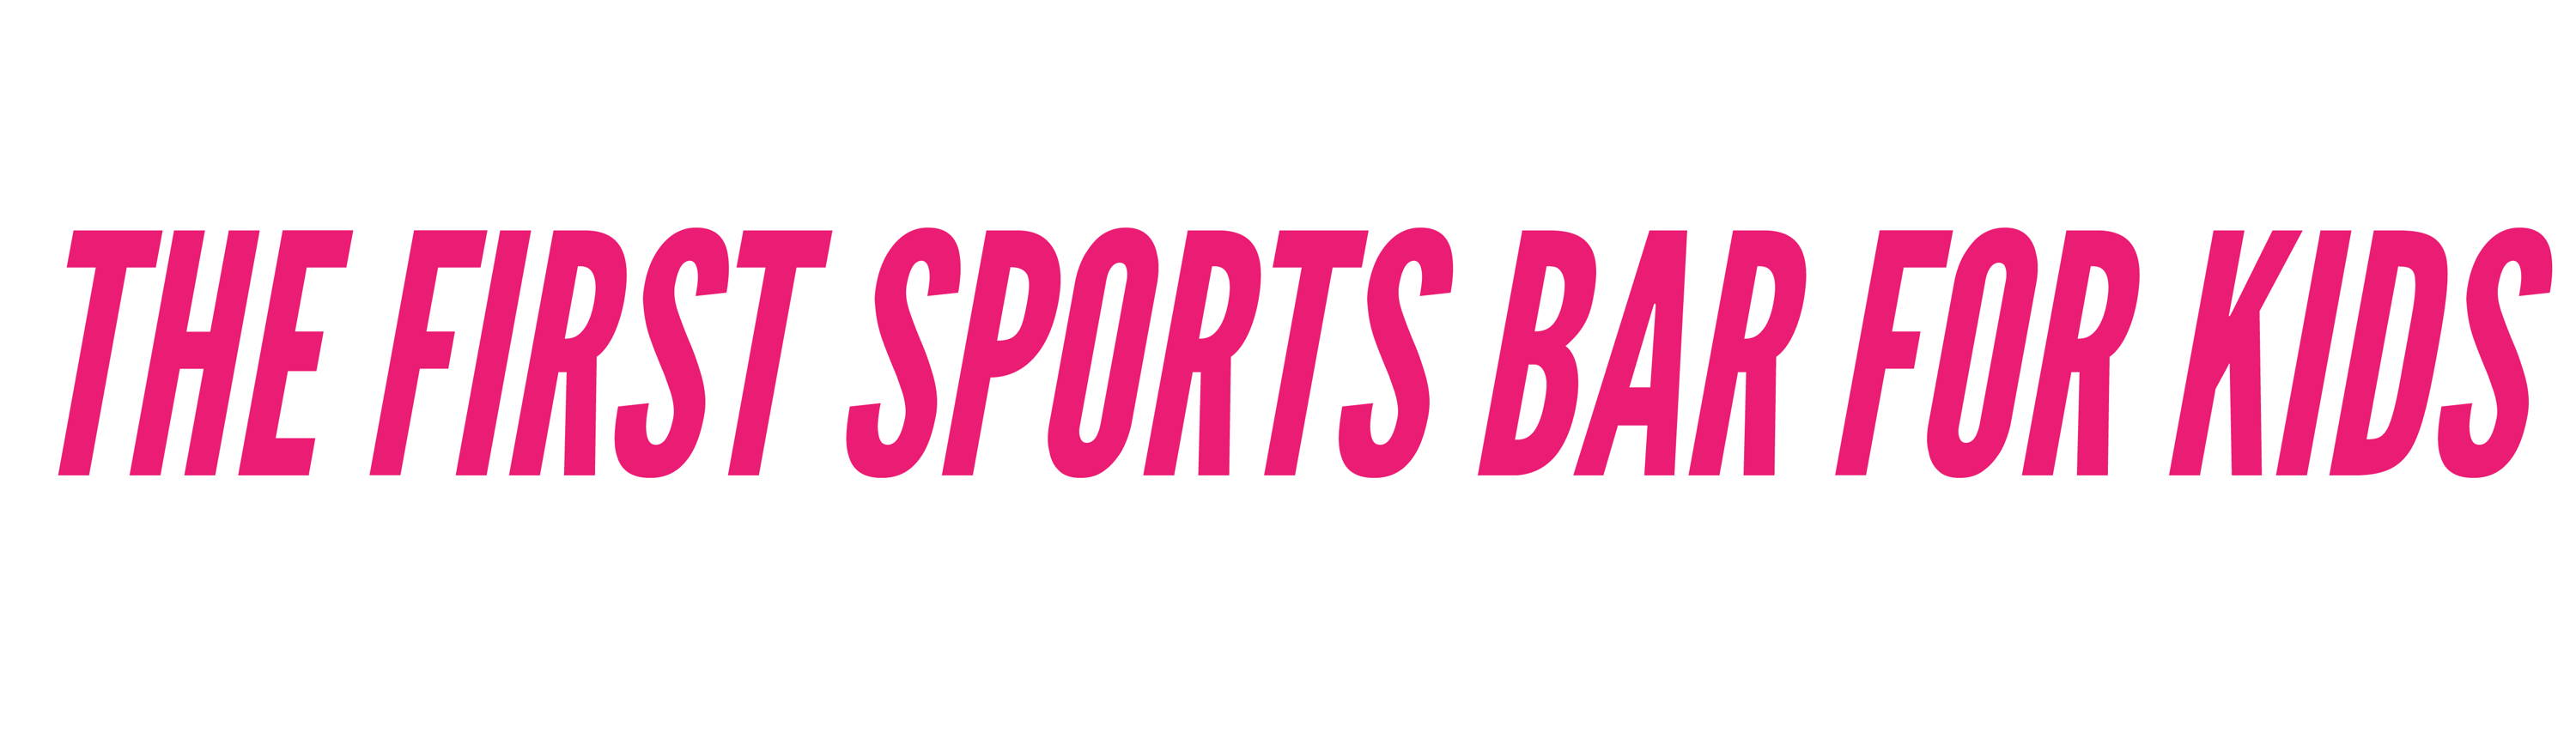 The First Sports Bar for Kids